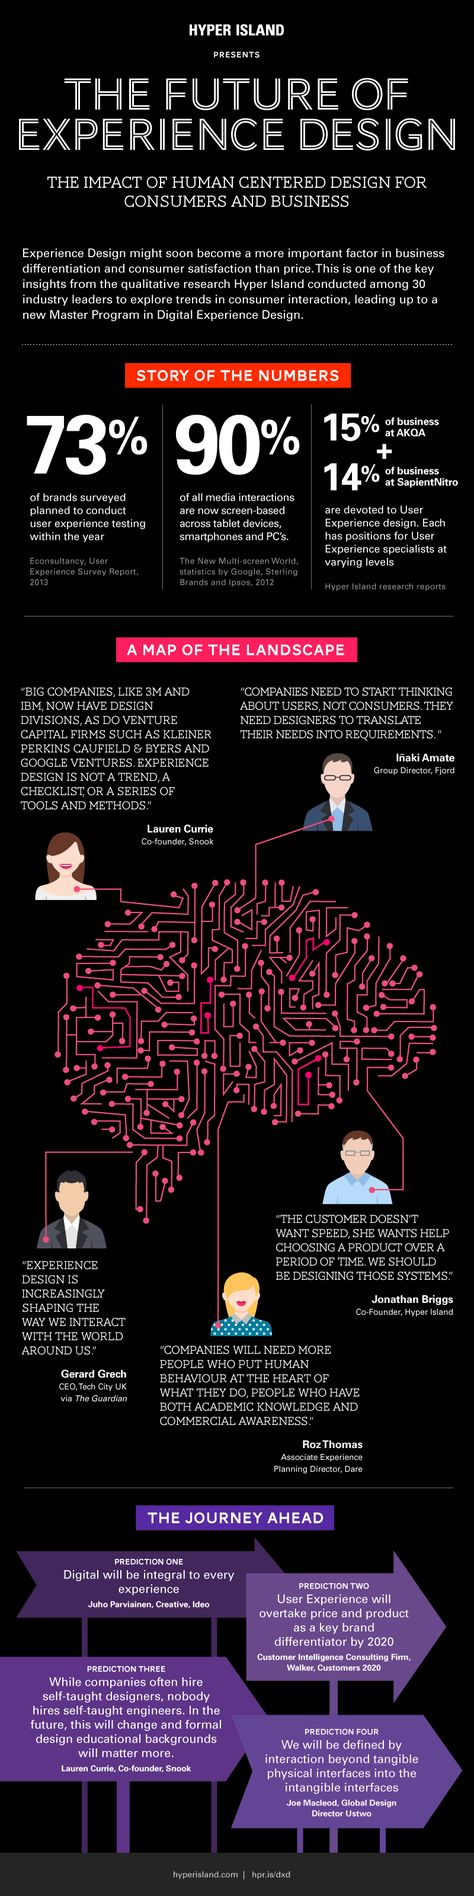 The Future Of Experience Design: The Impact Of Human Centered Design For Consumers & Business - #infographic